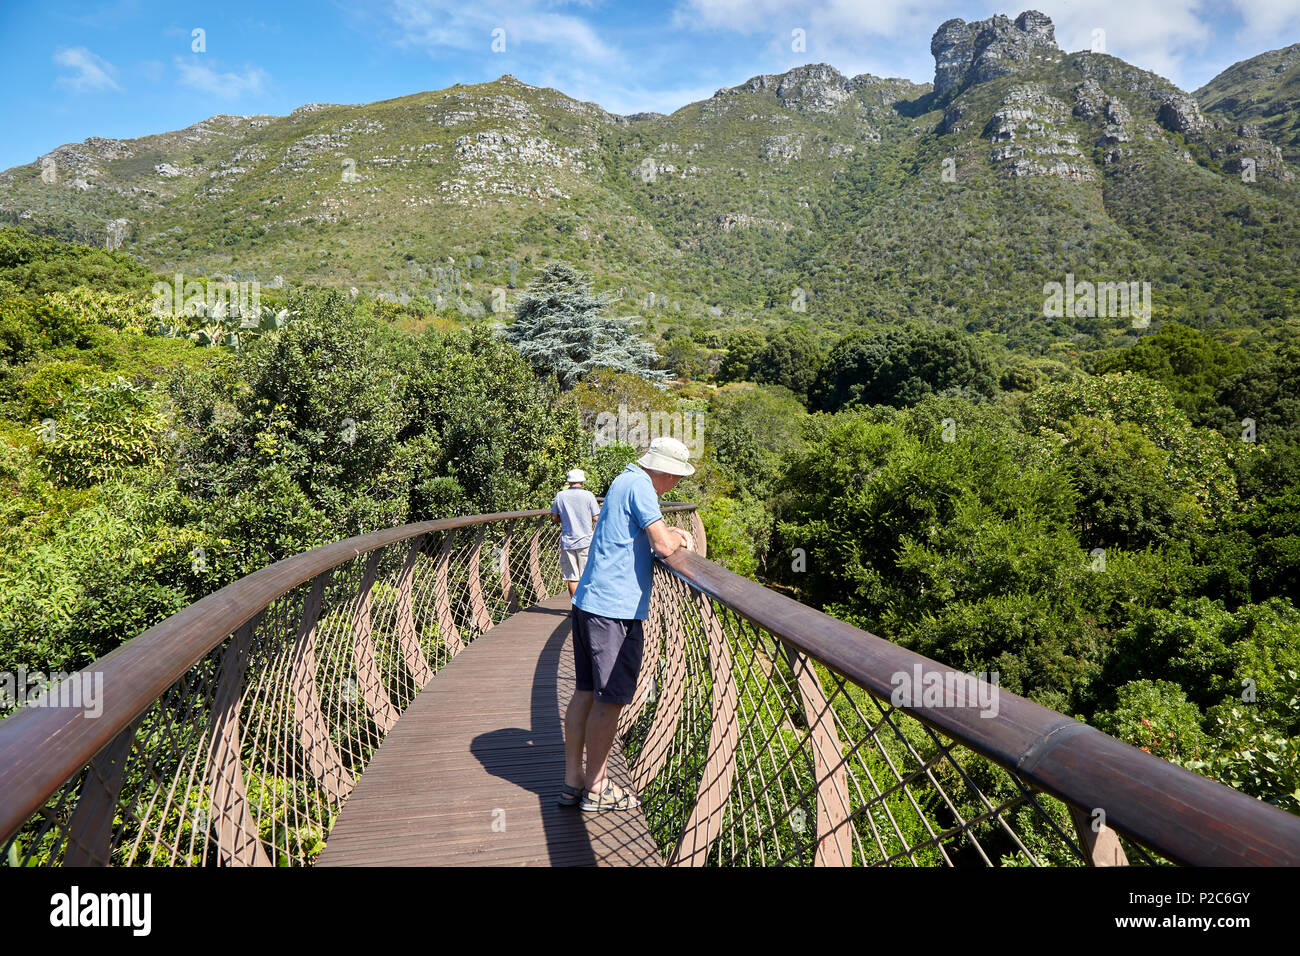 Boomslang tree canopy walkway in Kirstenbosch botanical Garden Cape Town SA - Stock Image